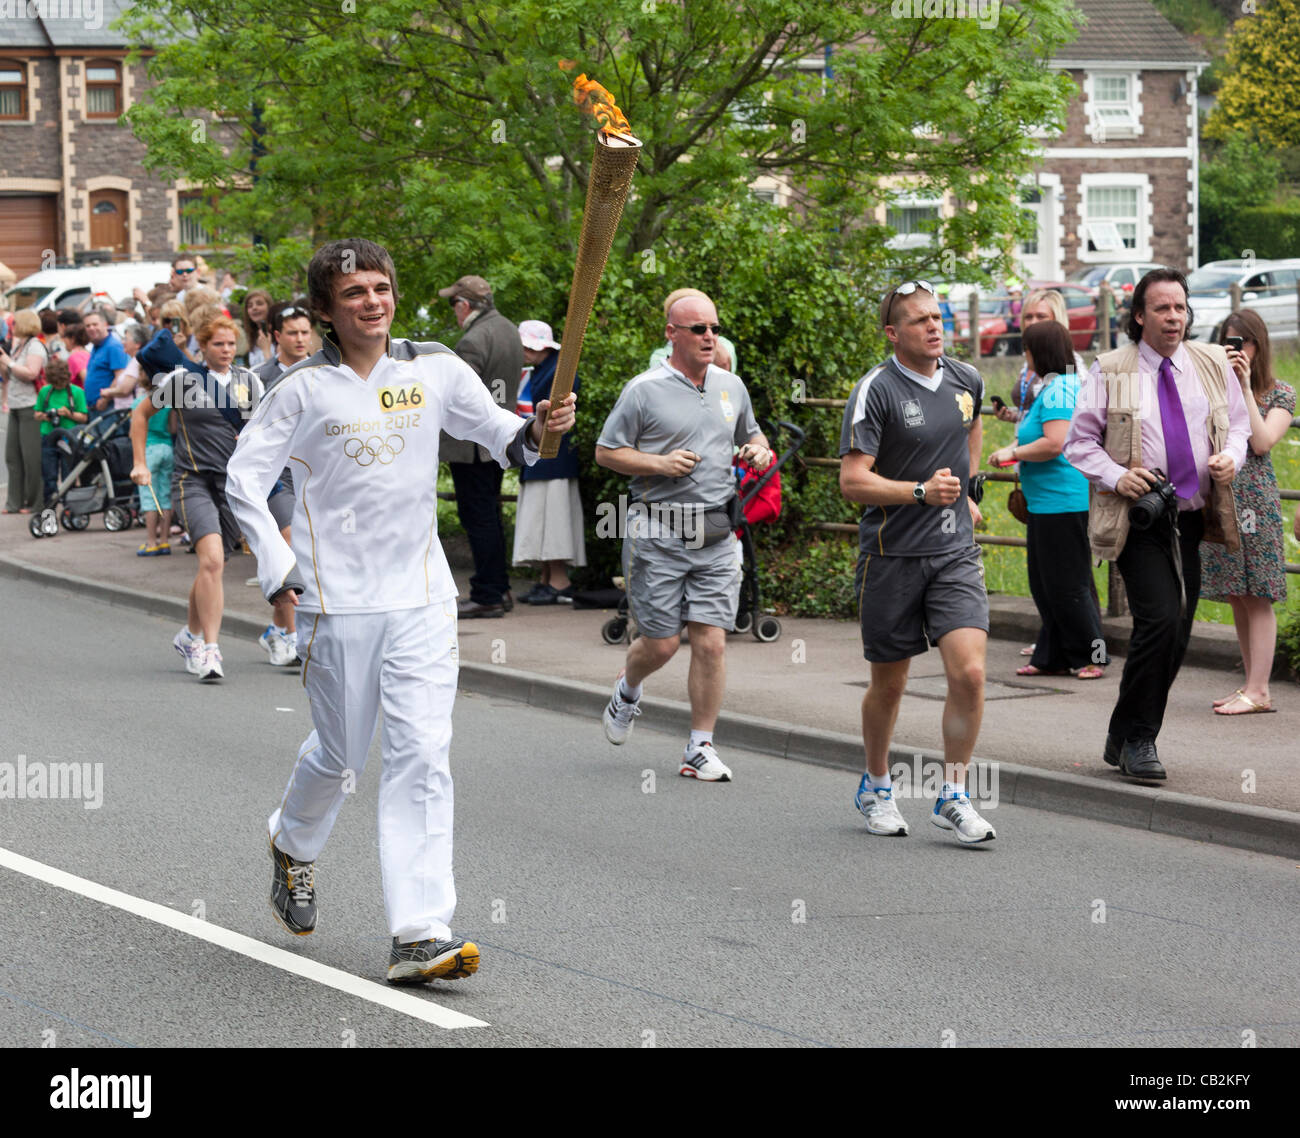 Sean Lewis age 16 from Llanbradach carryng the flame during the torch relay for the London 2012 Olympics through - Stock Image